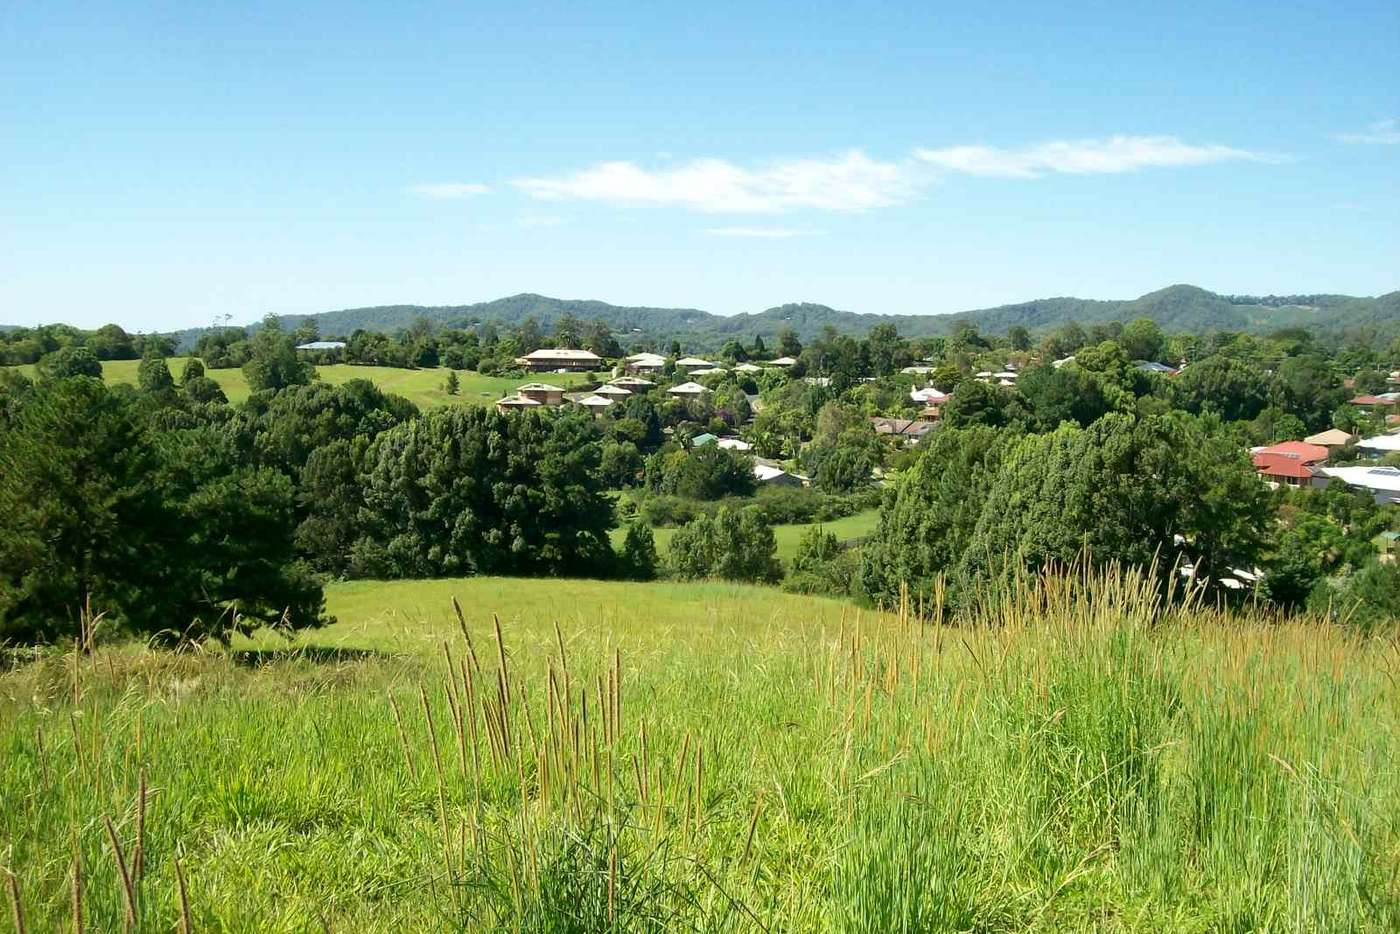 Main view of Homely residentialLand listing, 16 Ironbark Place, Bellingen NSW 2454